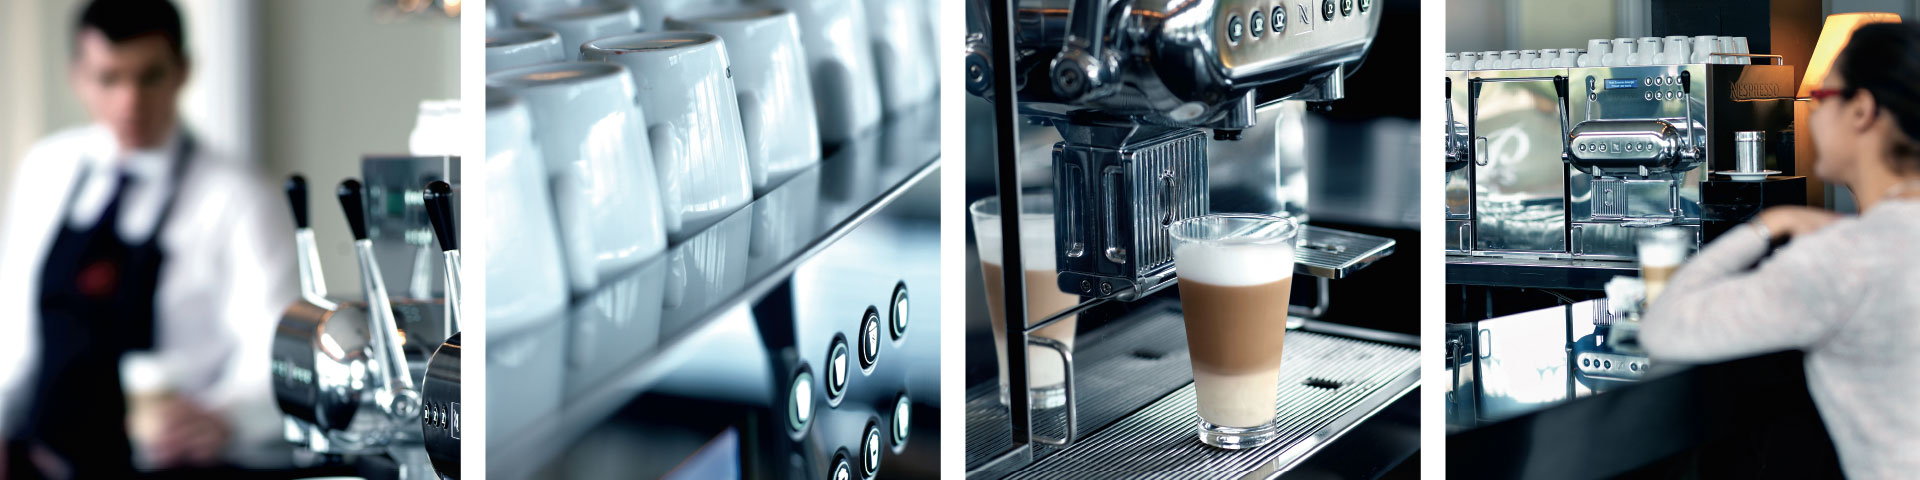 Maintenance and service for businesses - Nespresso Professional